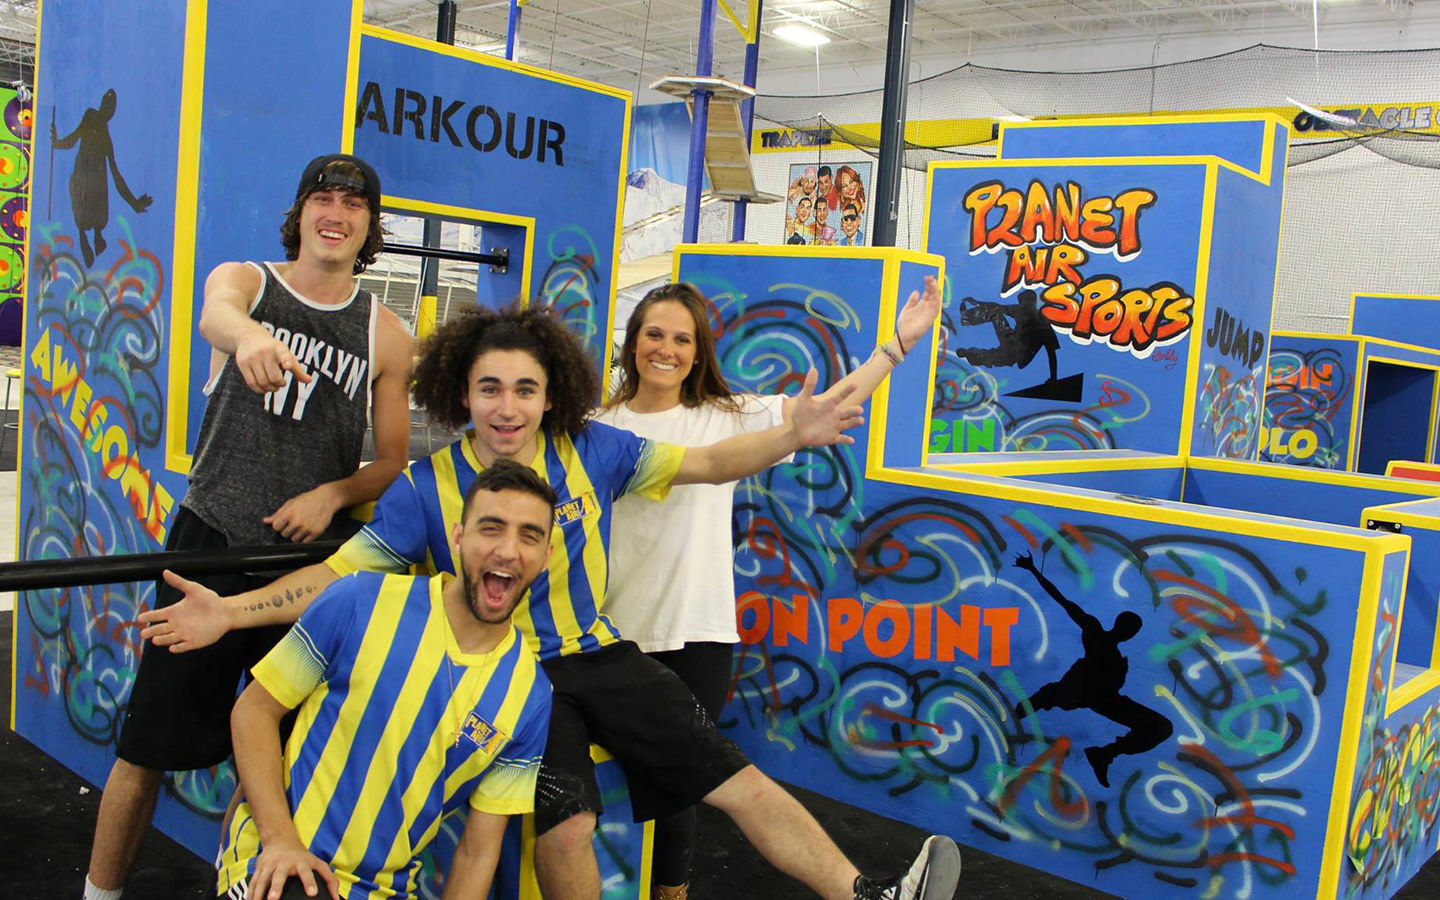 Planet Air Sports Parkour Attraktion